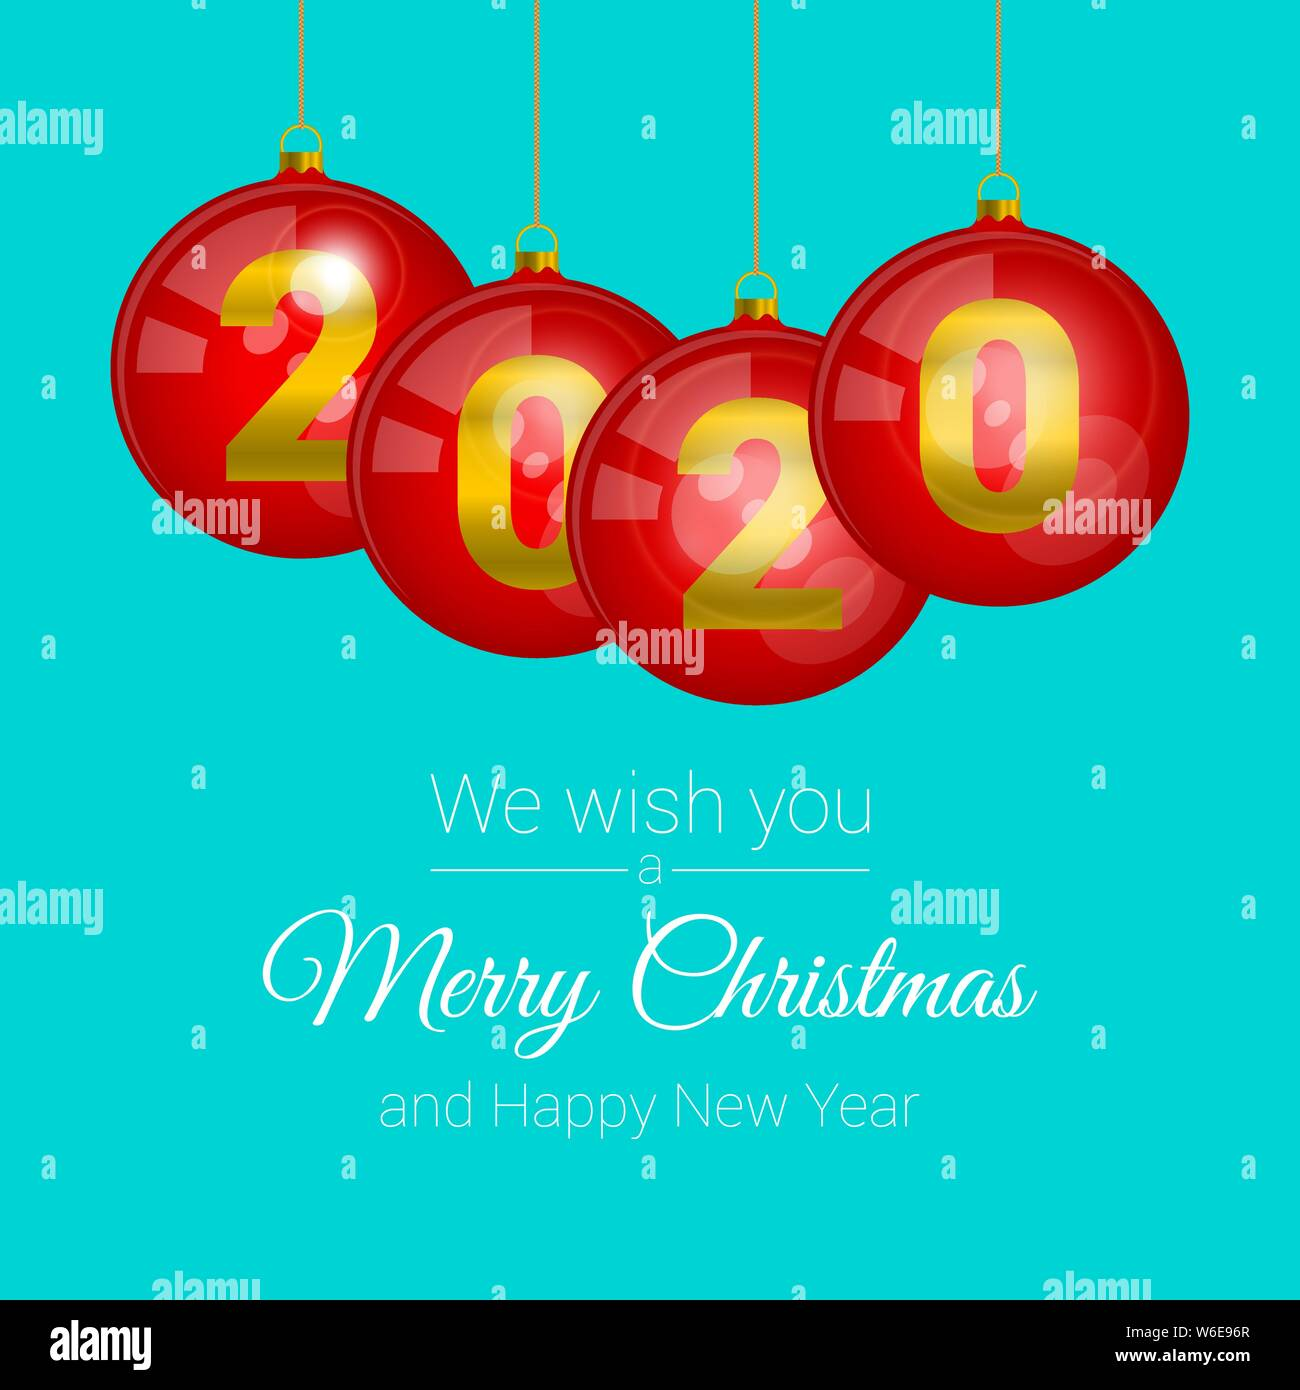 Glass Red Christmas Balls With Glares 2020 Numerals Merry Christmas And Happy New Year 2020 Background Template Christmas Greeting Card Vector Il Stock Vector Image Art Alamy